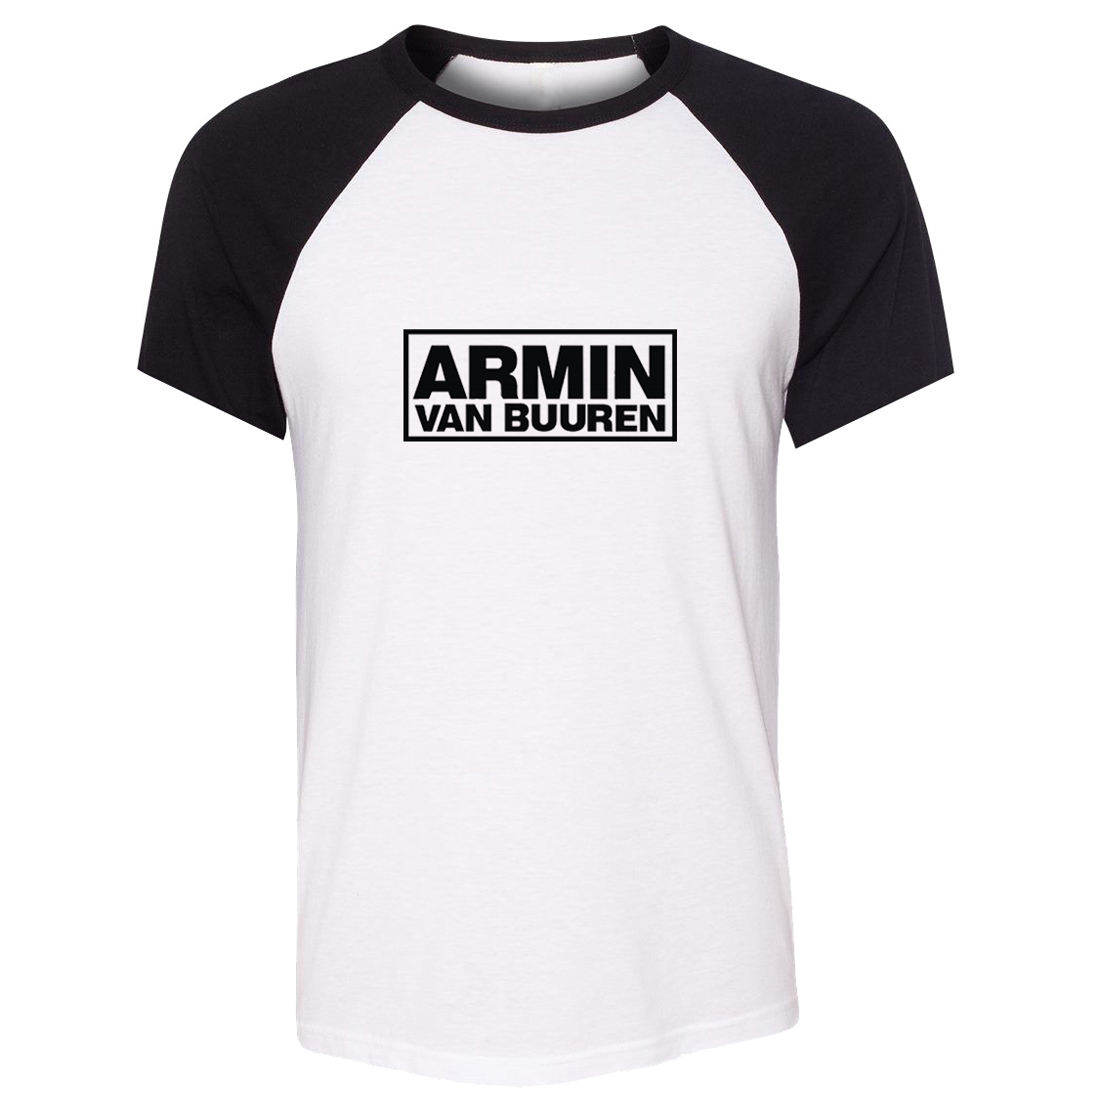 iDzn Unisex Summer Fashion T-shirt Armin Van Buuren DJ Fans Art Pattern Design Raglan Short Sleeve Men T shirt Casual Tee Tops